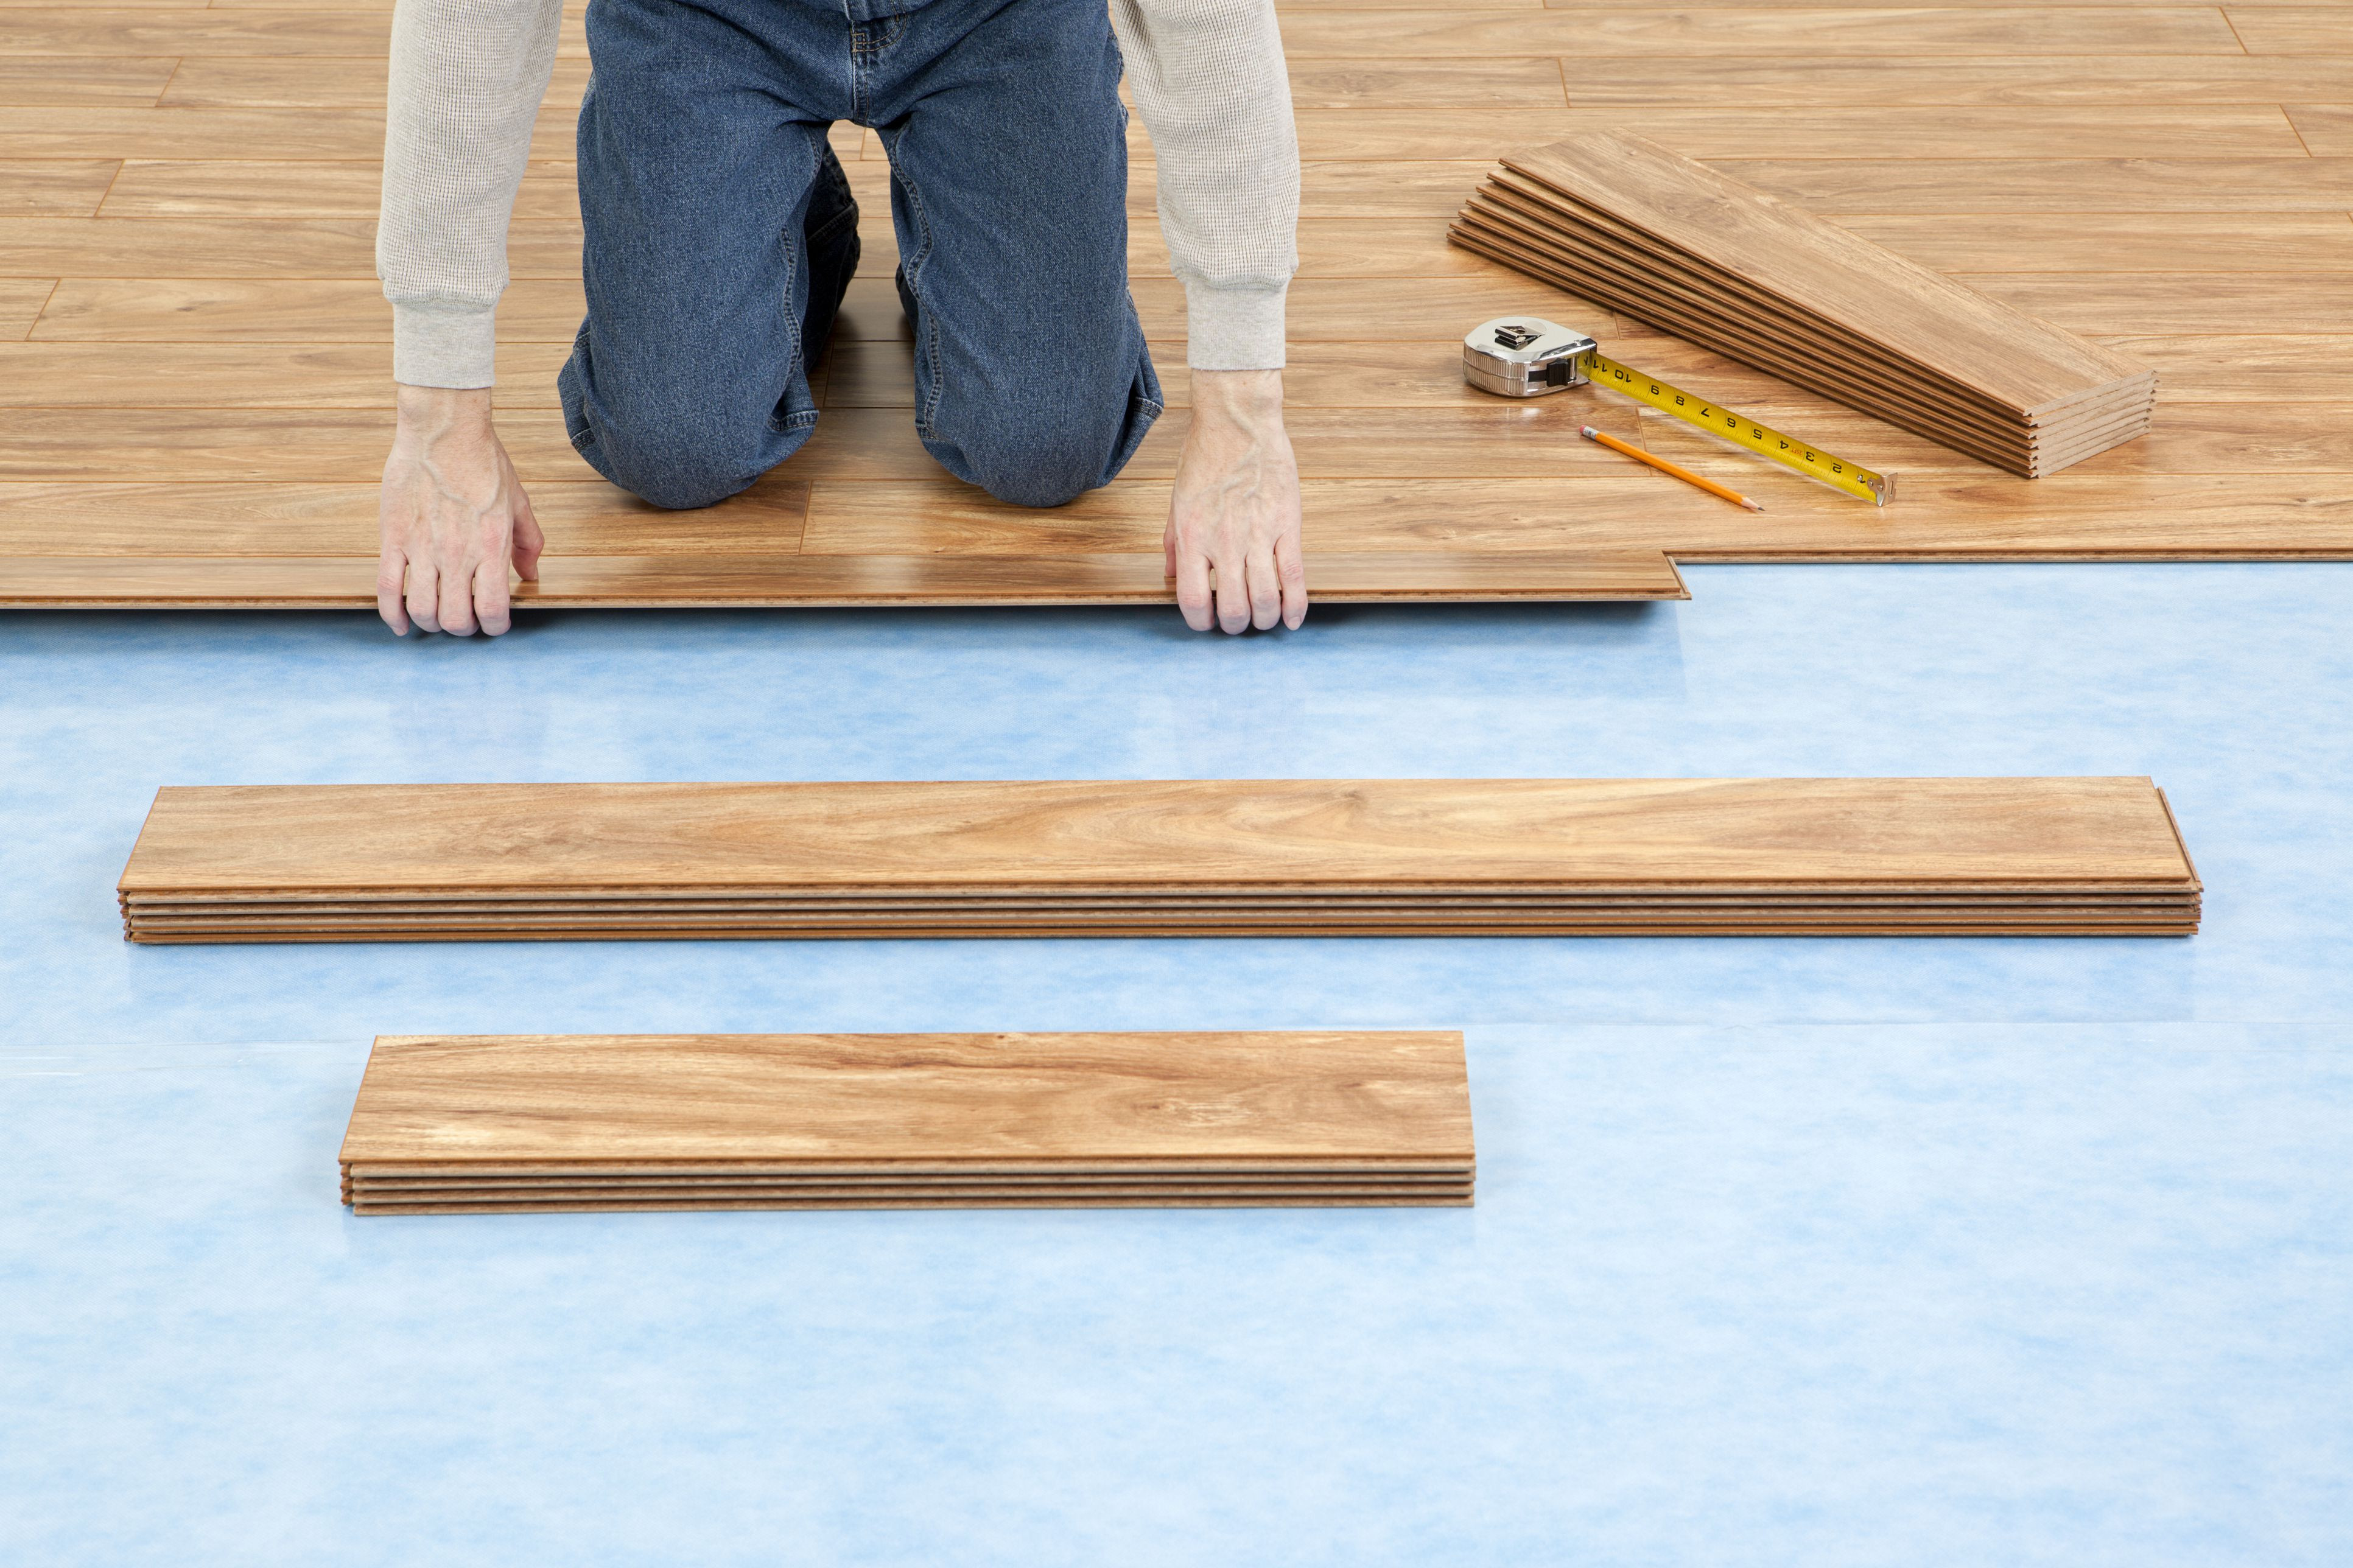 installing 3 8 hardwood floors of installing laminate flooring with attached underlayment in new floor installation 155283725 582735c03df78c6f6af8ac80